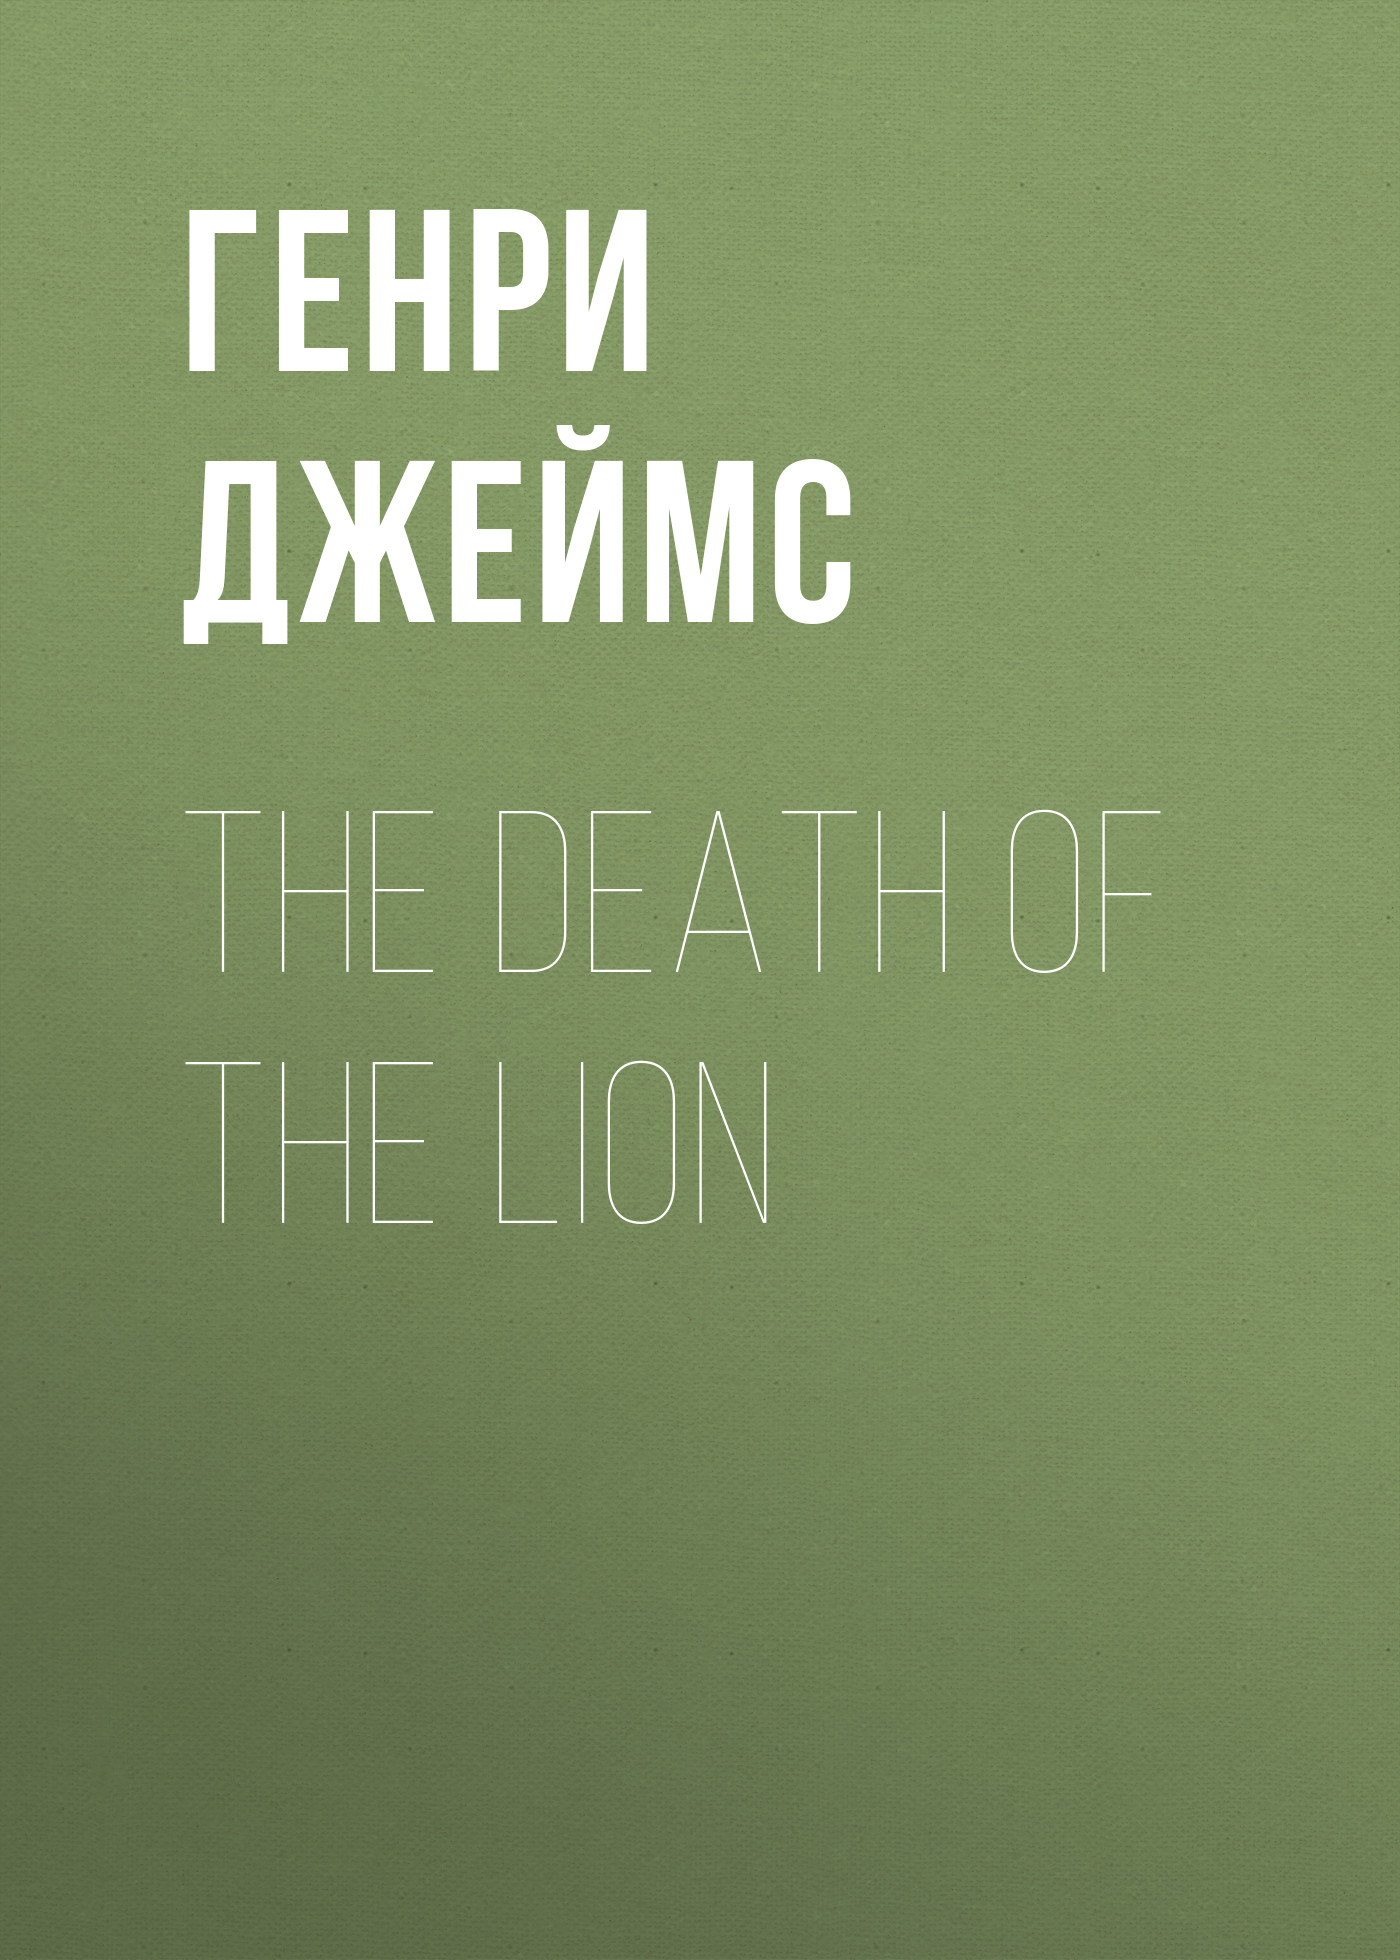 Генри Джеймс The Death of the Lion генри джеймс the bostonians vol i